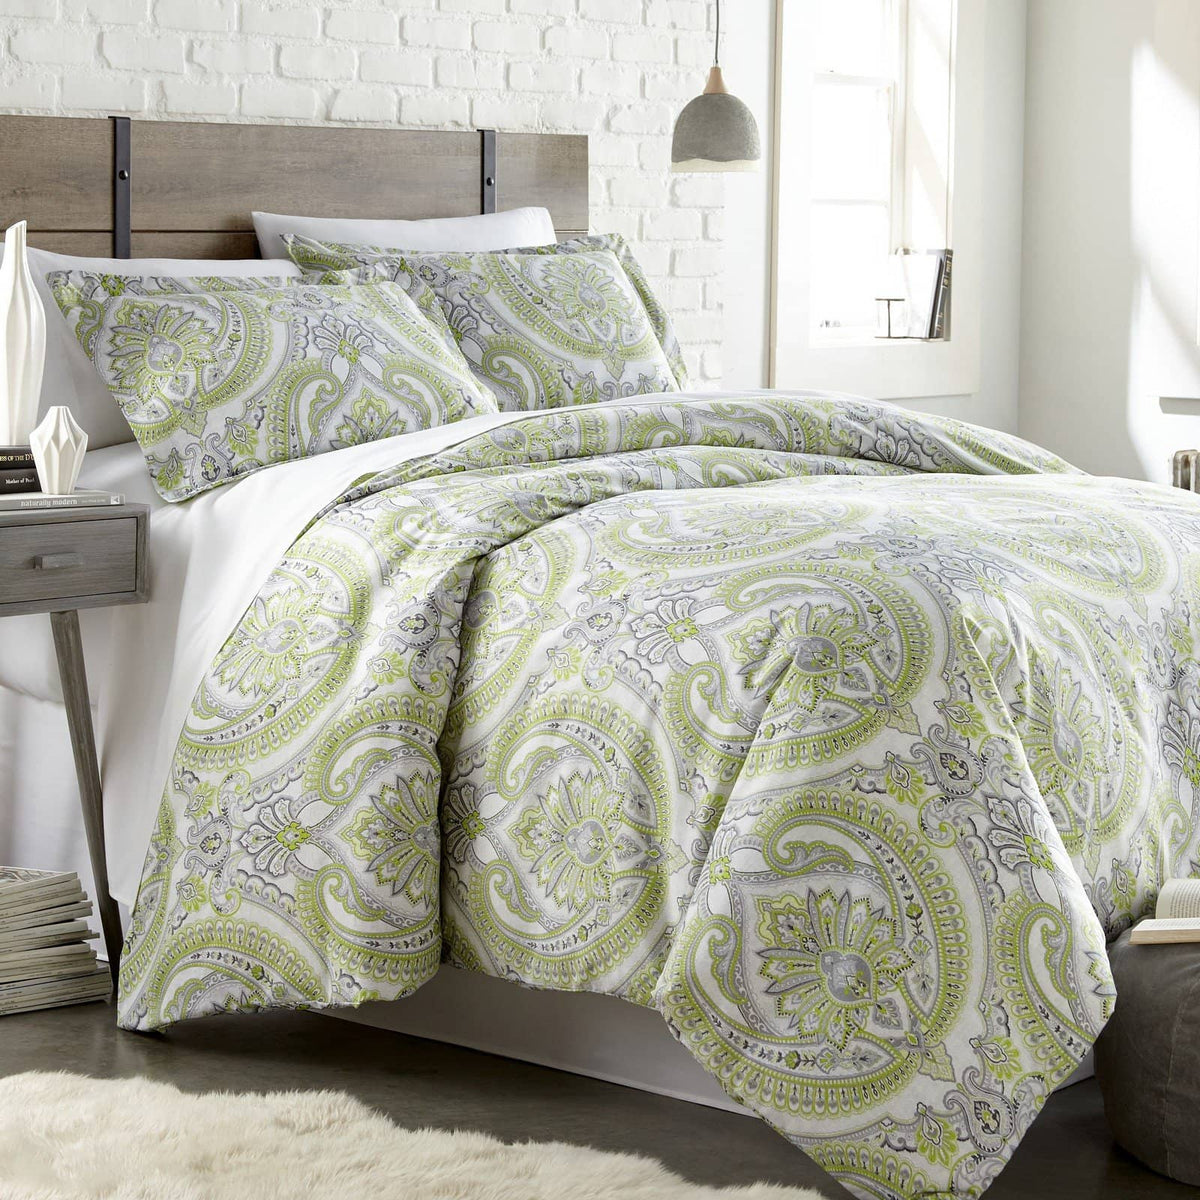 Pure Melody Classic Paisley Ultra Soft And Supreme Quality Duvet Cover Set Southshore Fine Linens